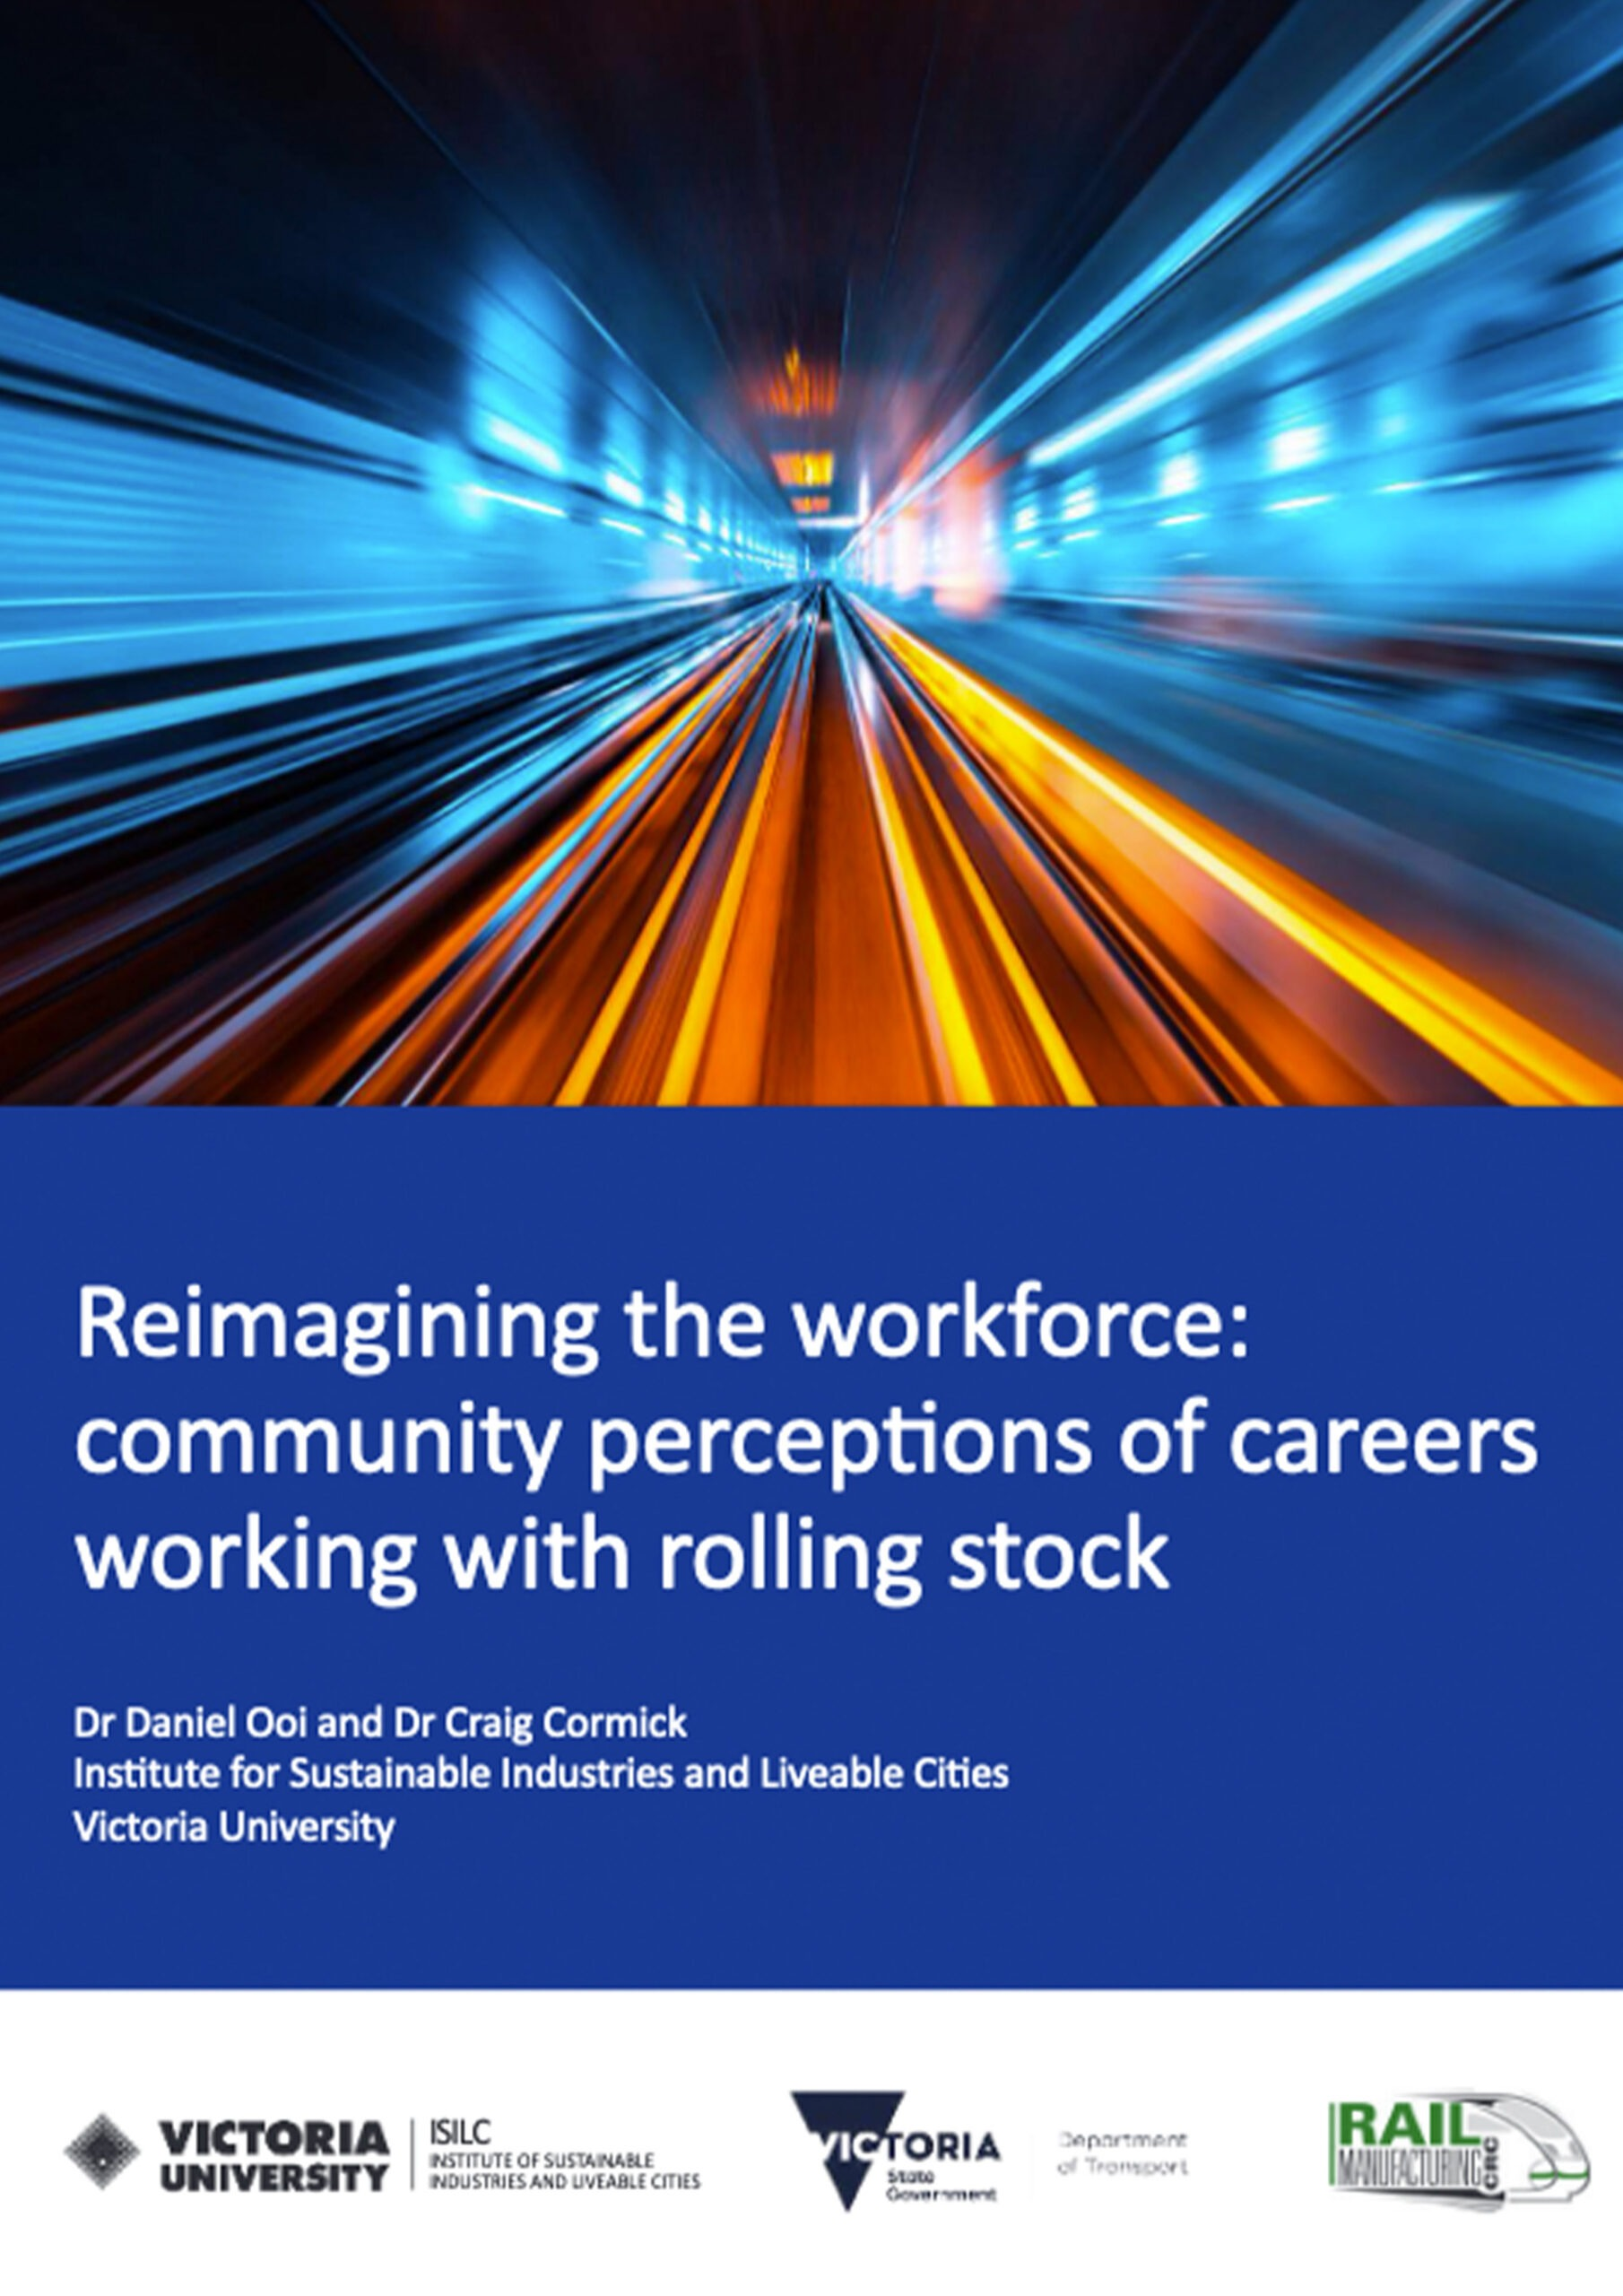 Community perceptions of careers working with rolling stock